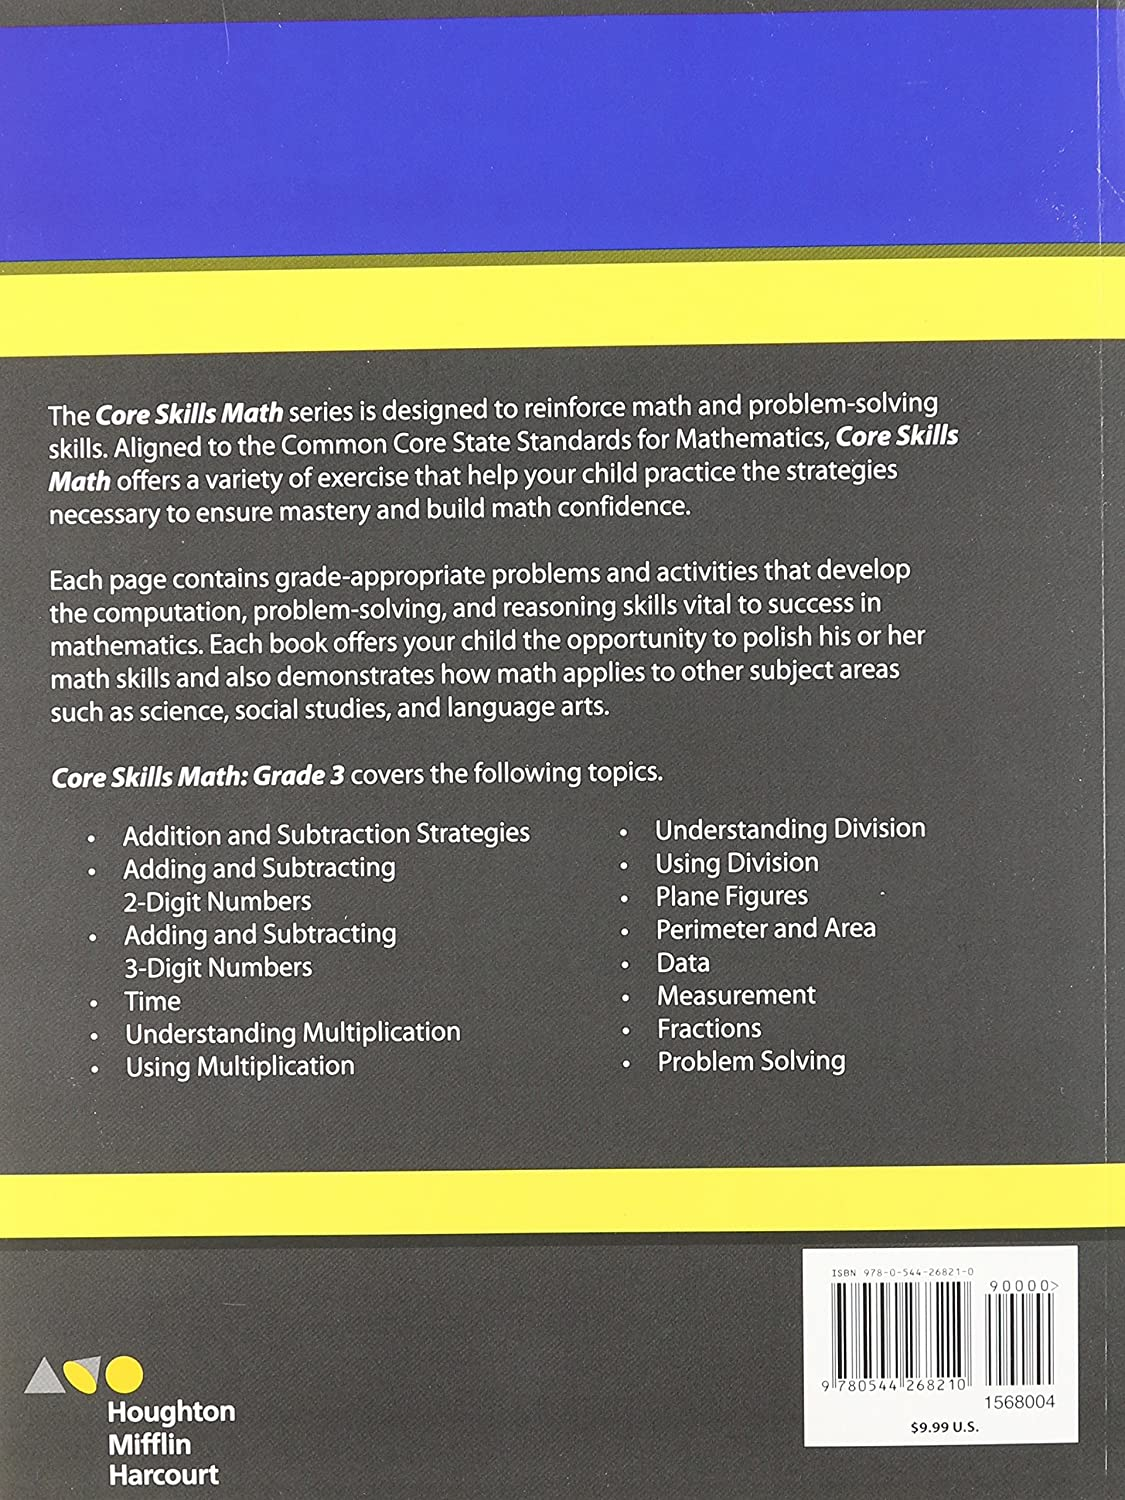 Steck vaughn core skills mathematics workbook grade 3 steck vaughn steck vaughn core skills mathematics workbook grade 3 steck vaughn 9780544268210 amazon books fandeluxe Gallery